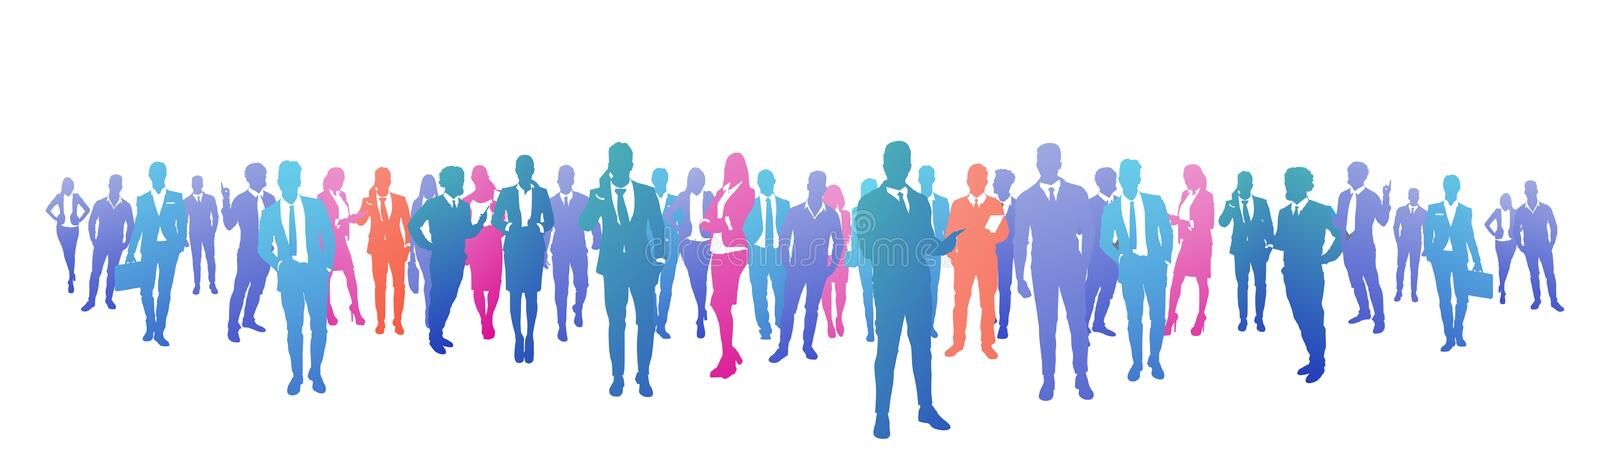 Colourful success business people silhouette, group of diversity businessman and businesswoman successful team concept royalty free illustration